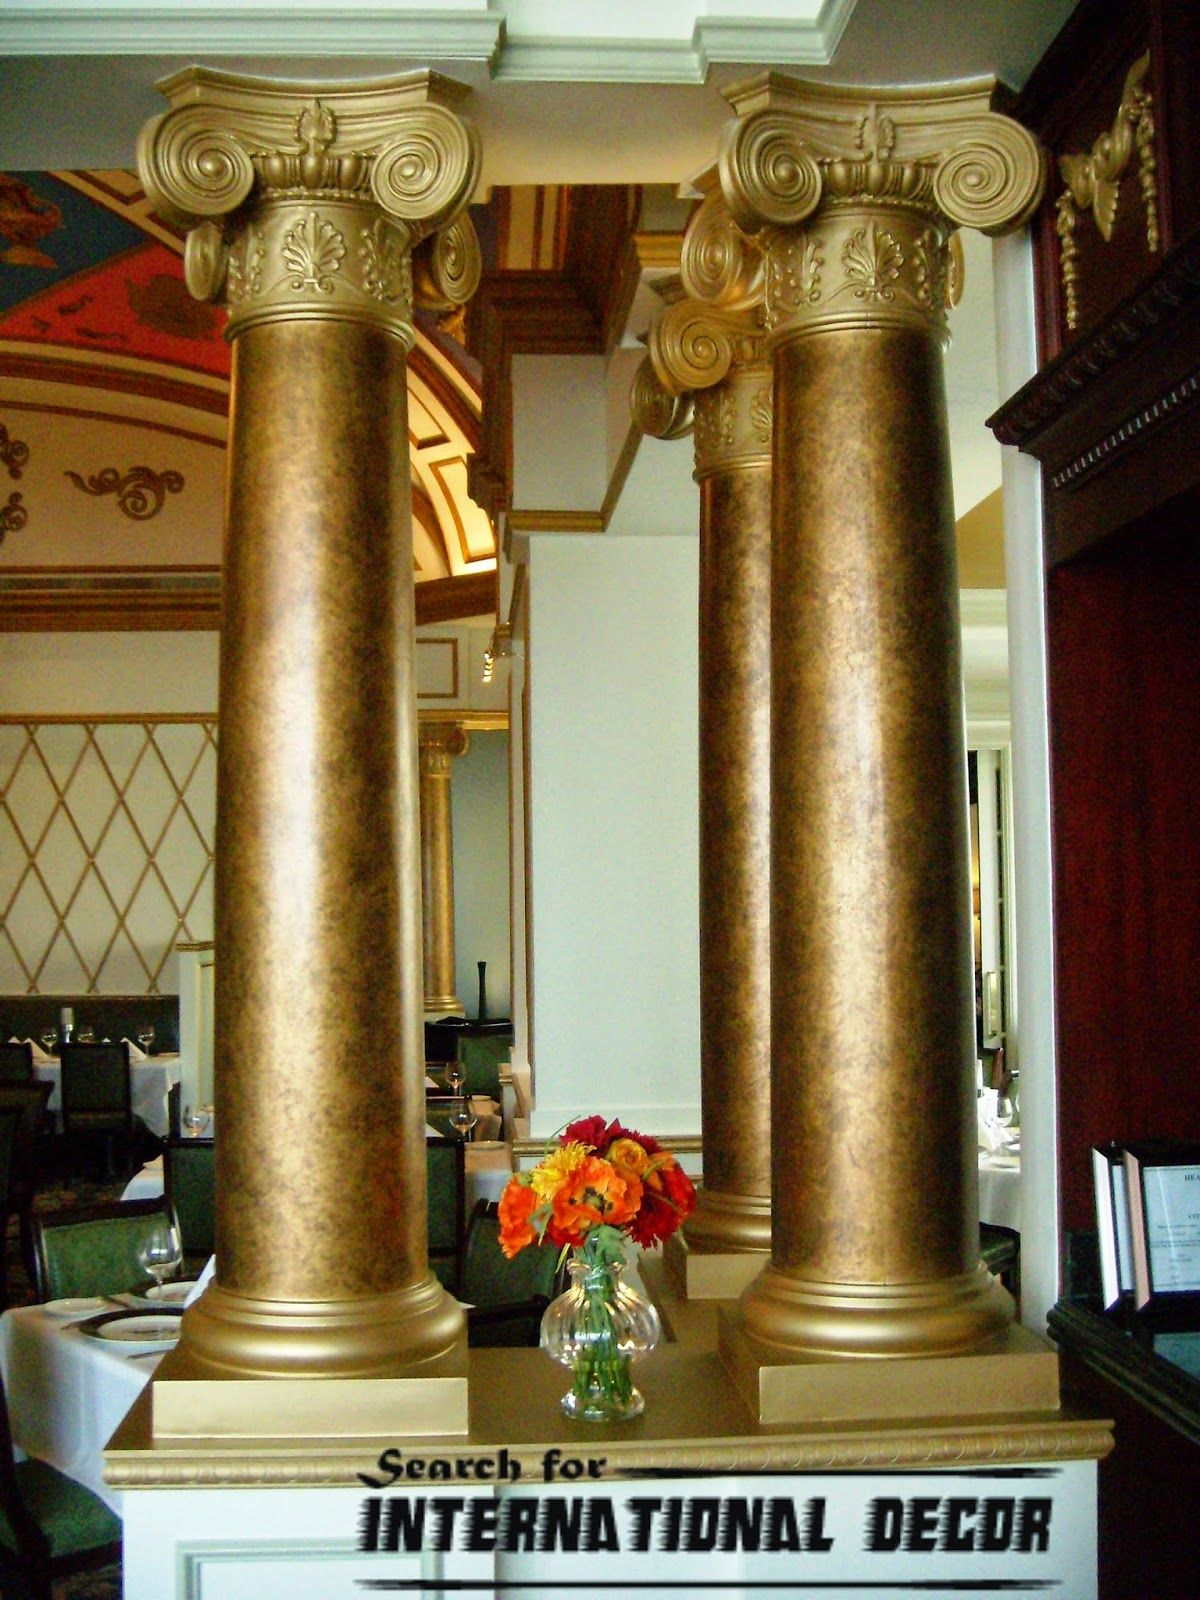 and column decor decorative options rndromanioniccap permacast fiberglass bases caps base roman ionic cap columns round